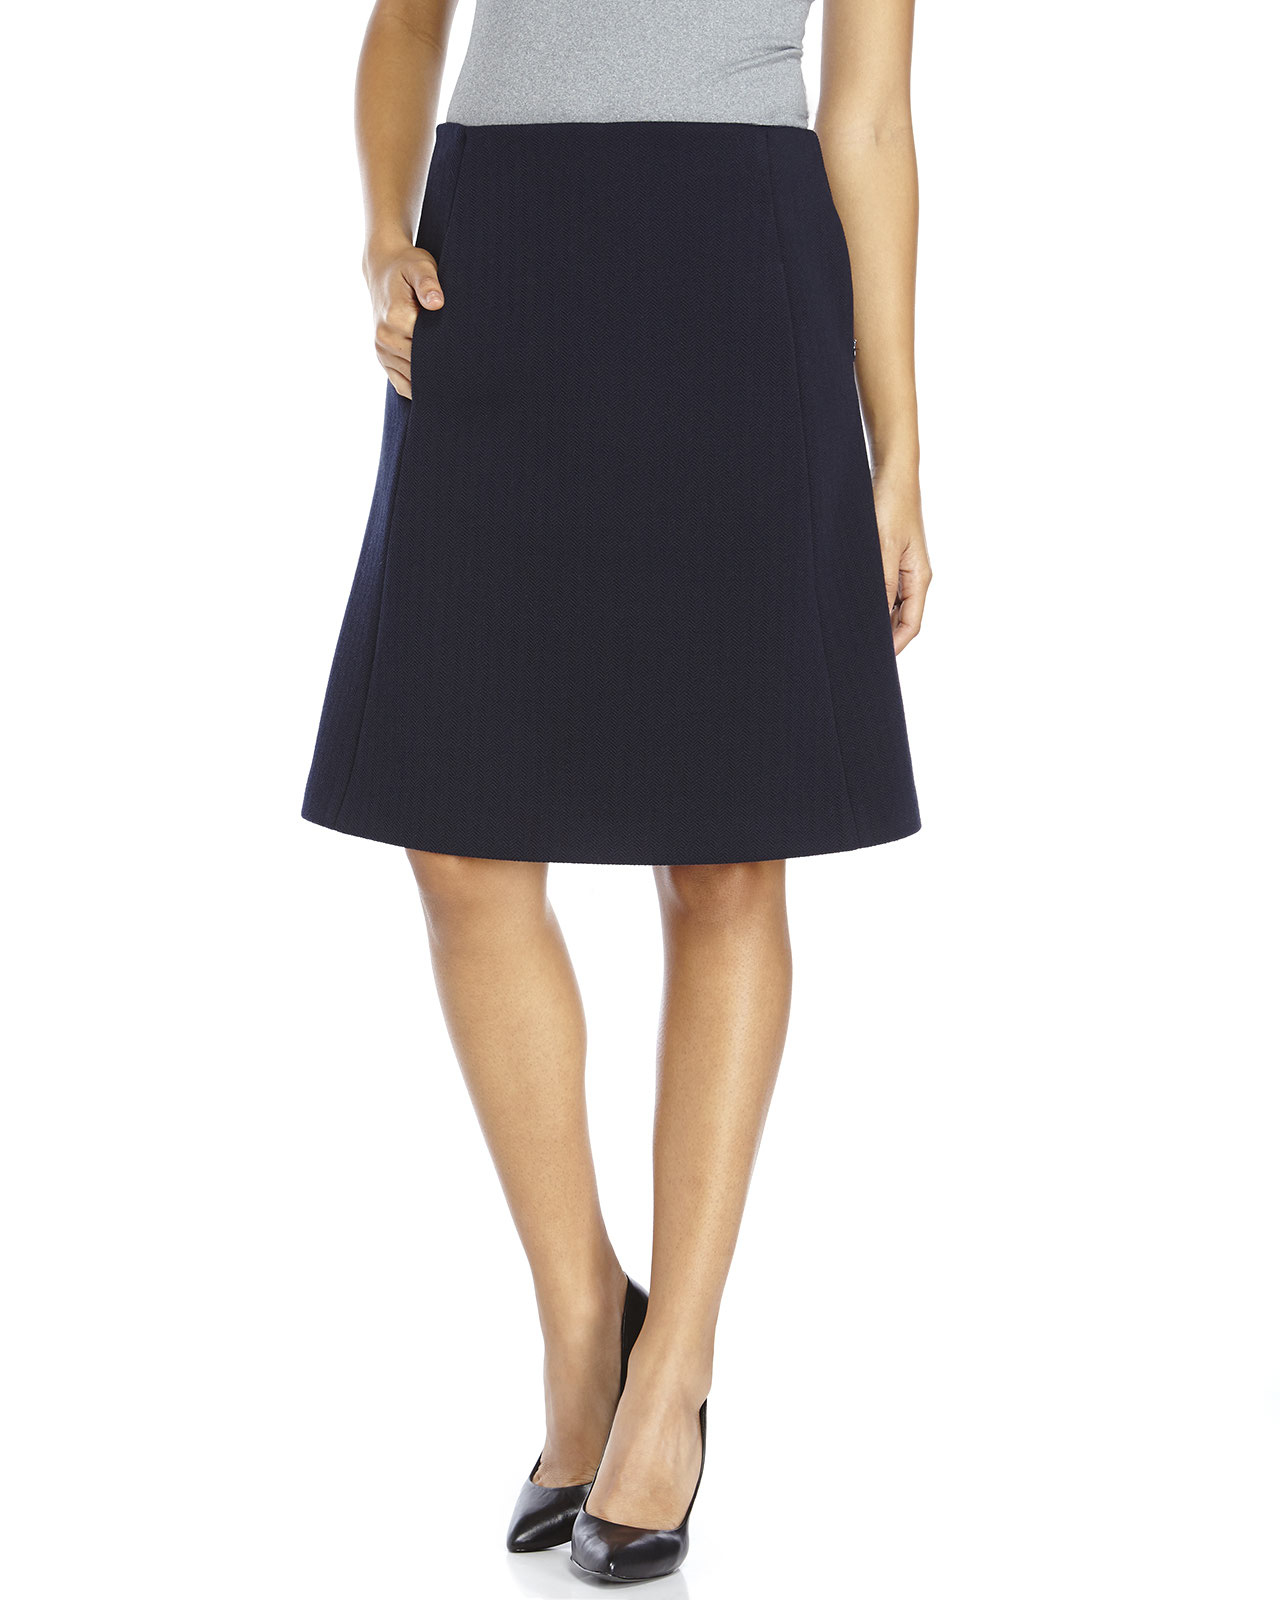 Jil sander navy Herringbone A-Line Skirt in Blue | Lyst